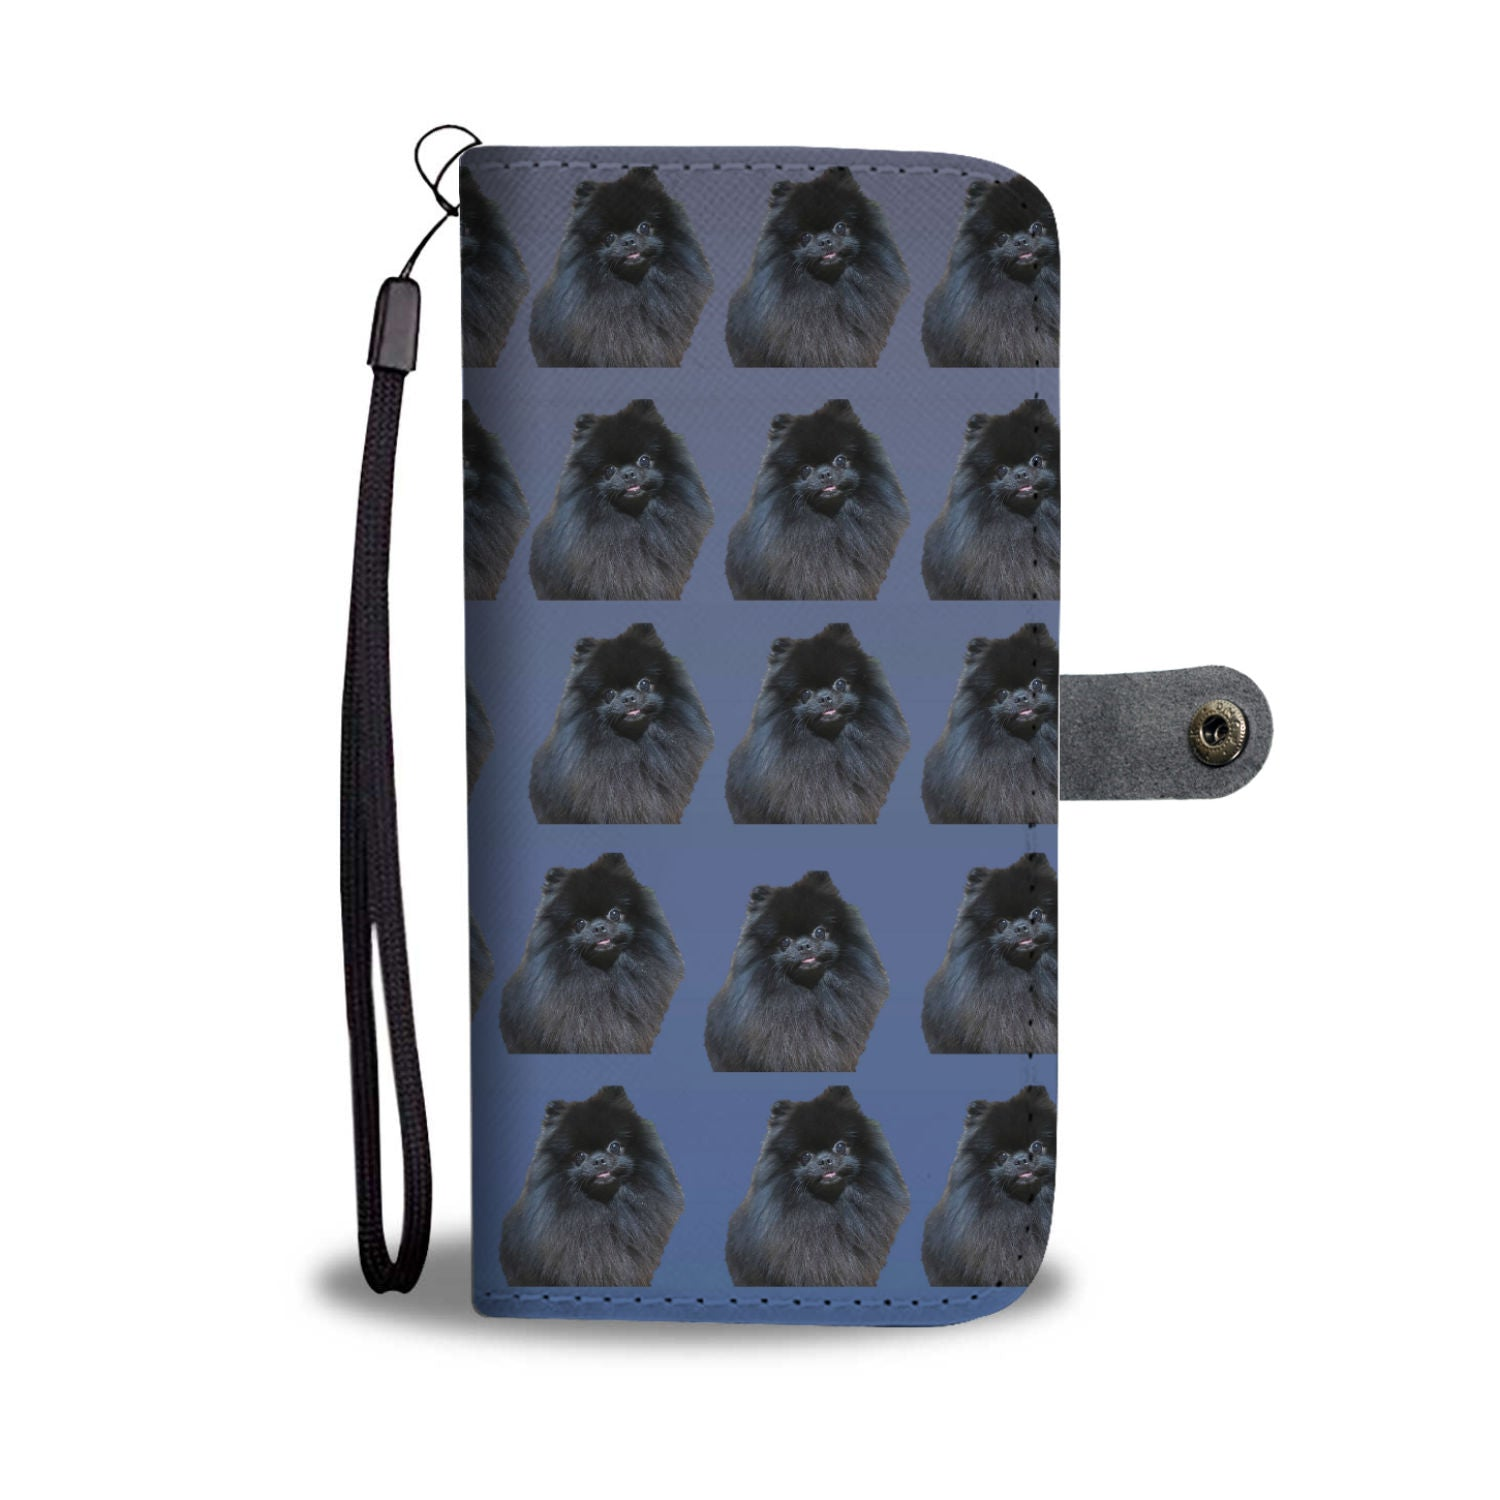 Pomeranian Phone Case Wallet - Black